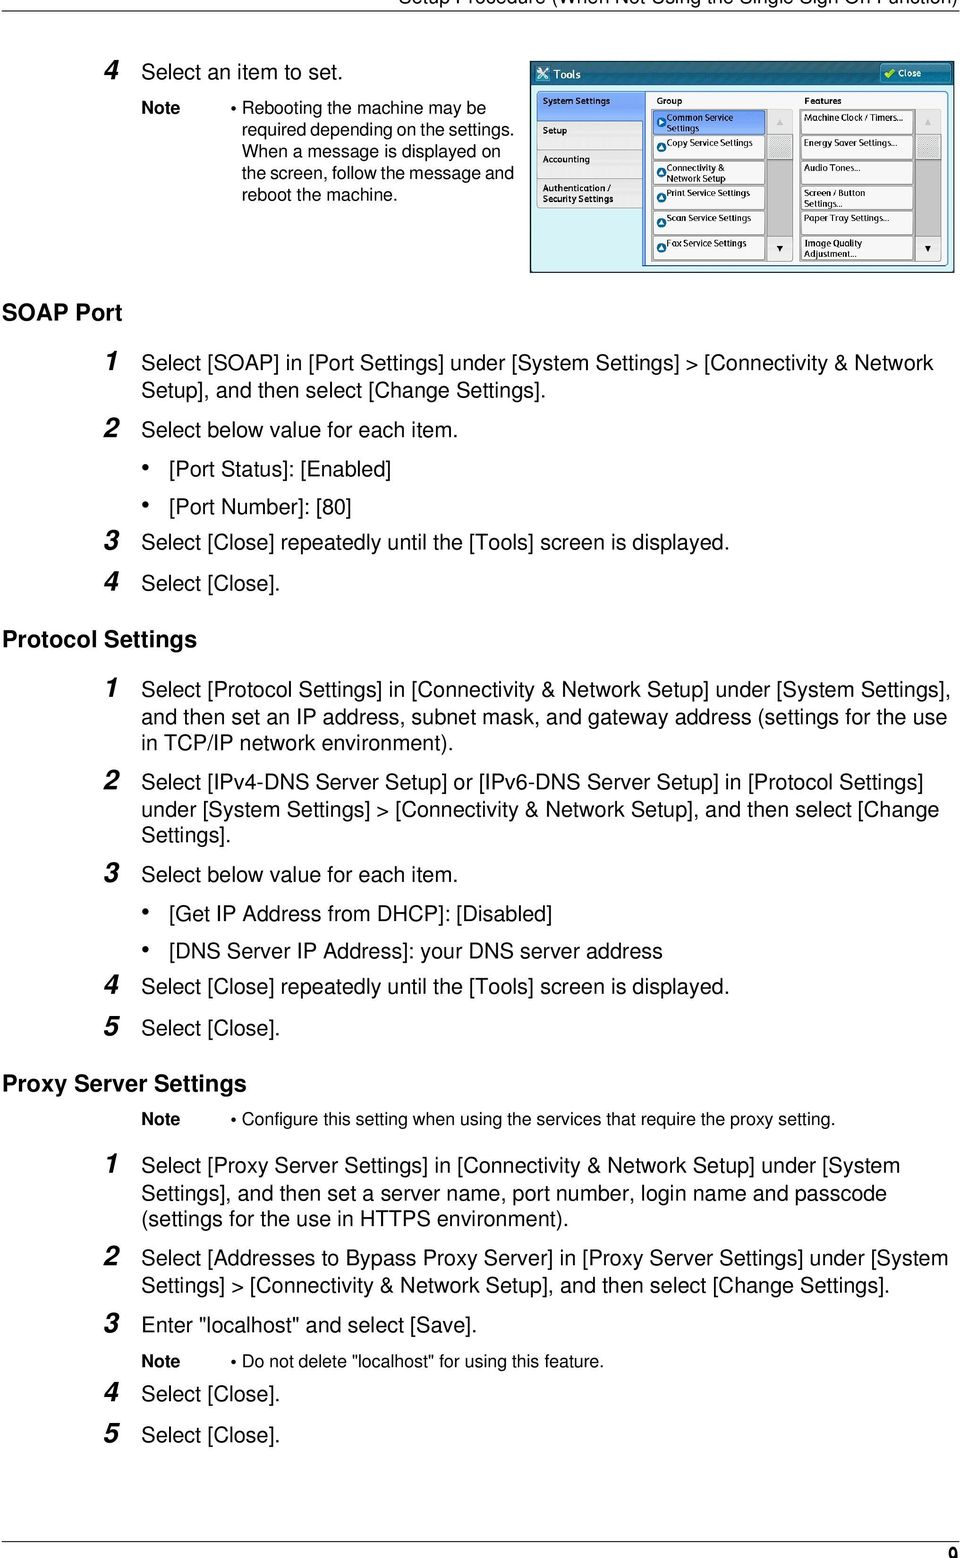 SOAP Port 1 Select [SOAP] in [Port Settings] under [System Settings] > [Connectivity & Network Setup], and then select [Change Settings]. 2 Select below value for each item.